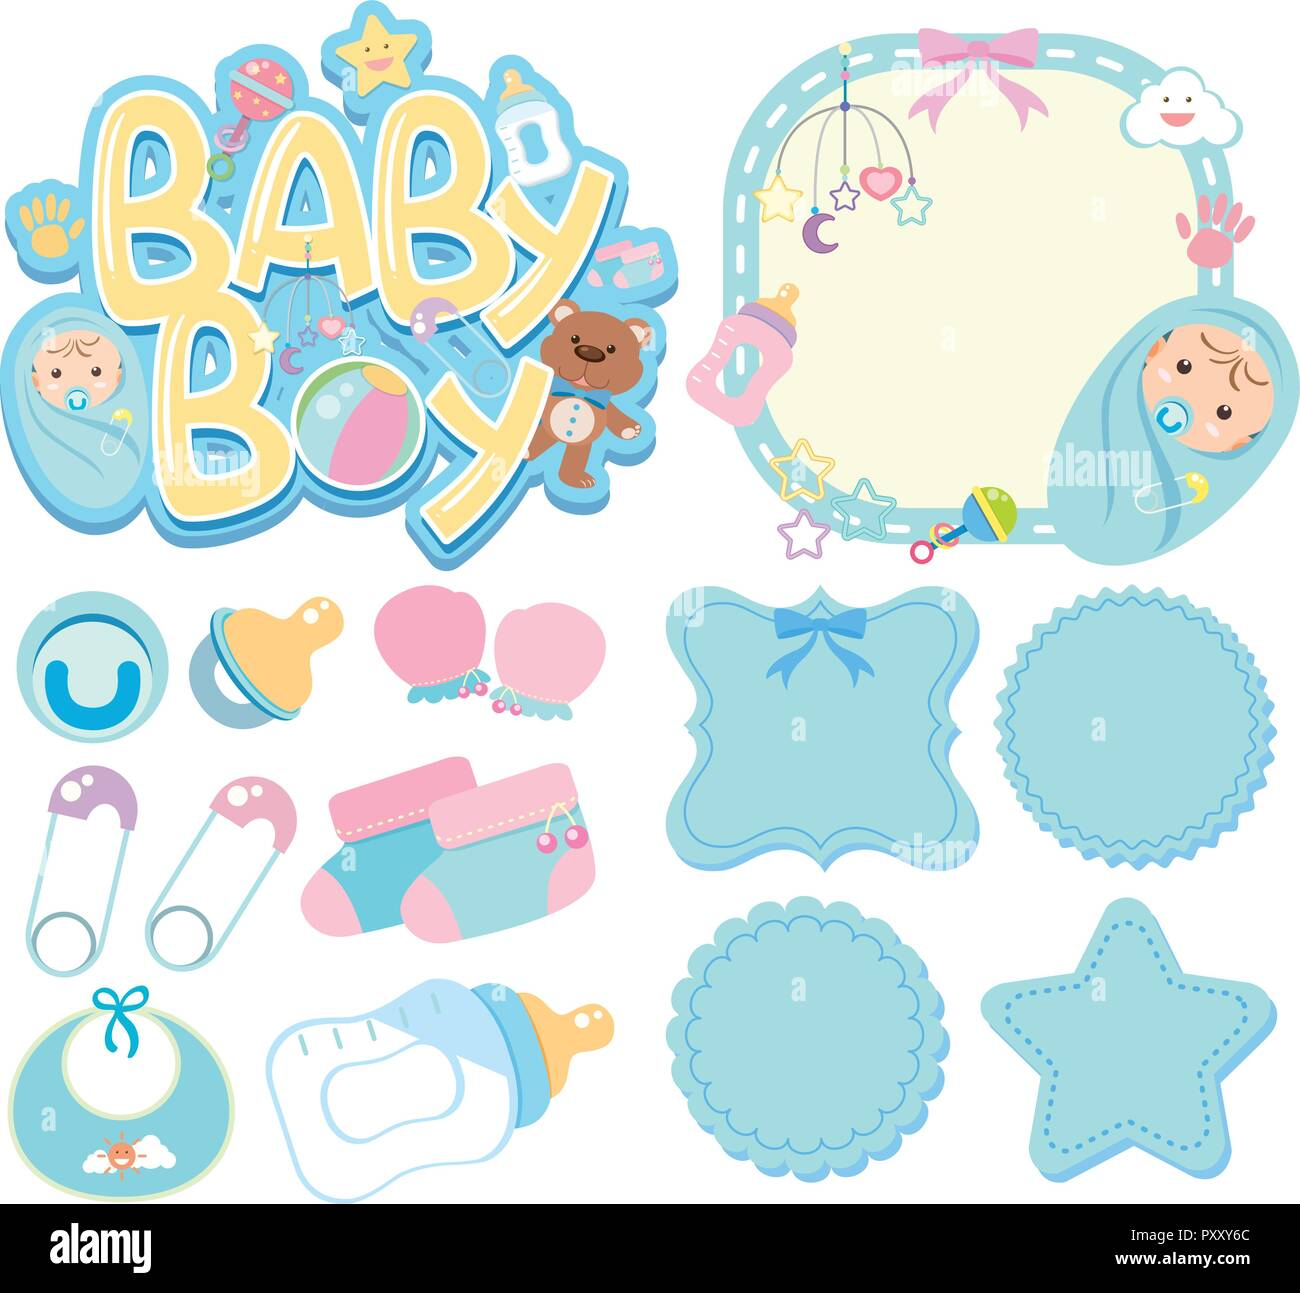 banner templates for baby boy illustration stock vector art